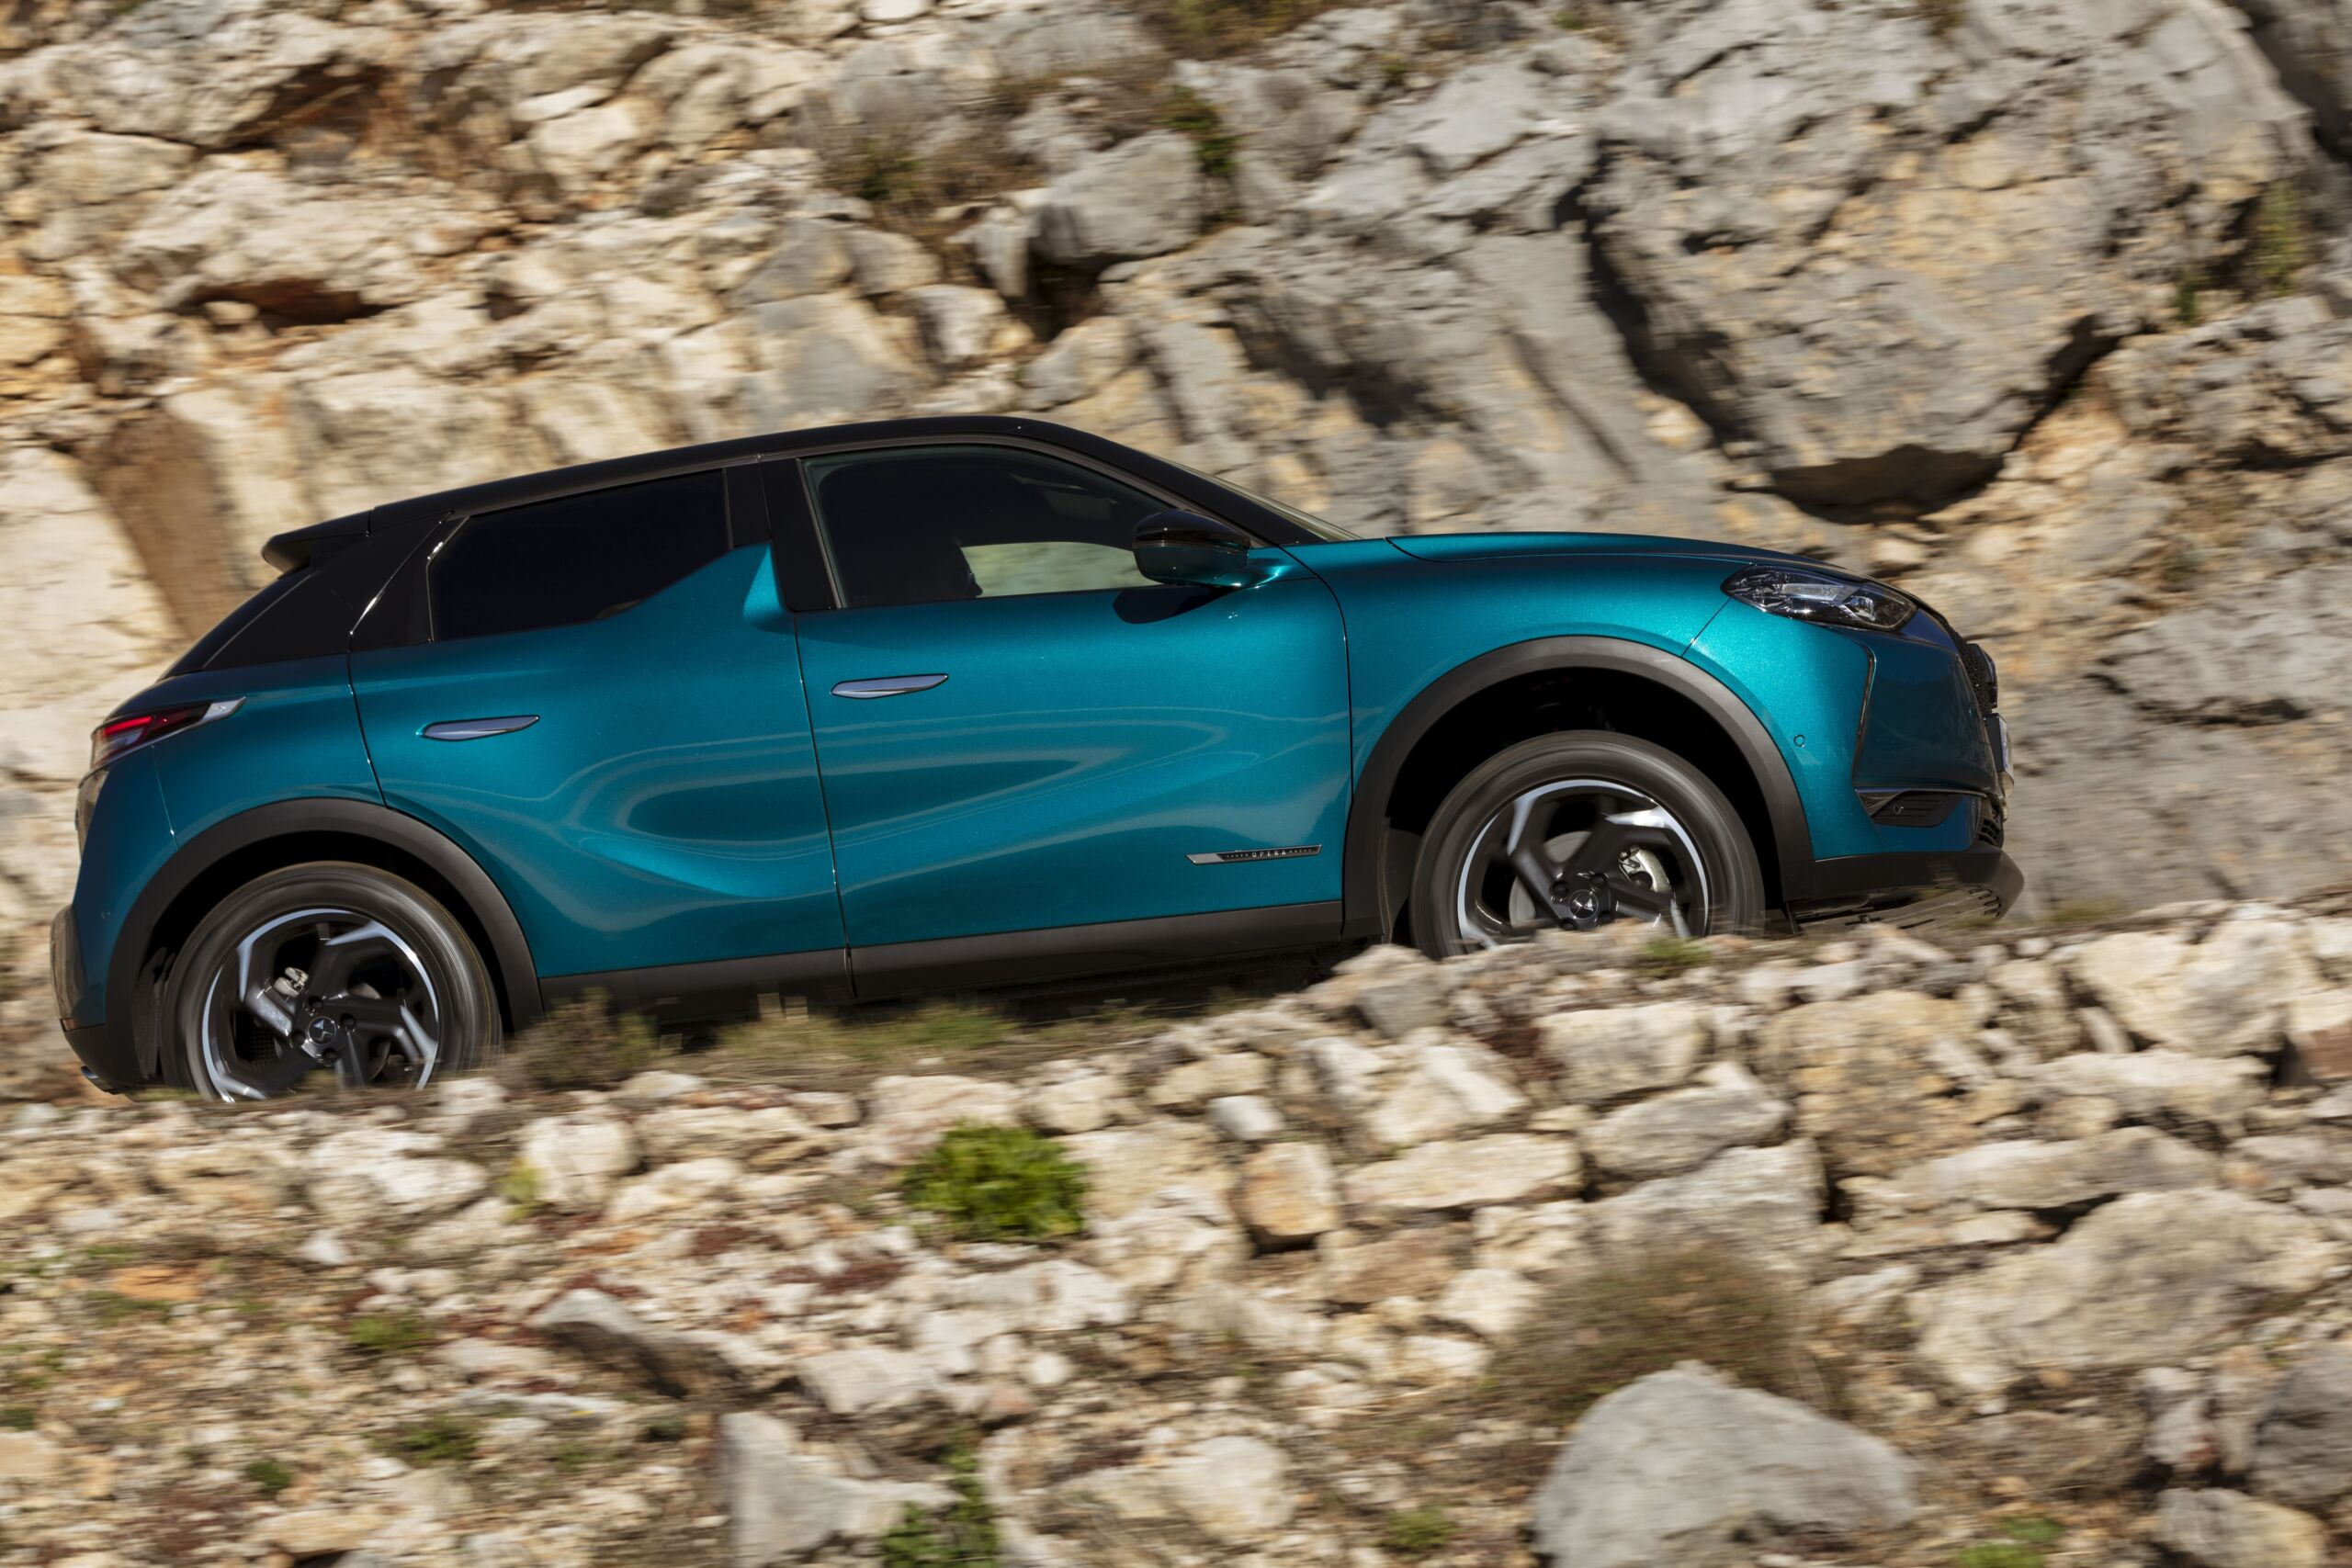 DS 3 Crossback model year 2022